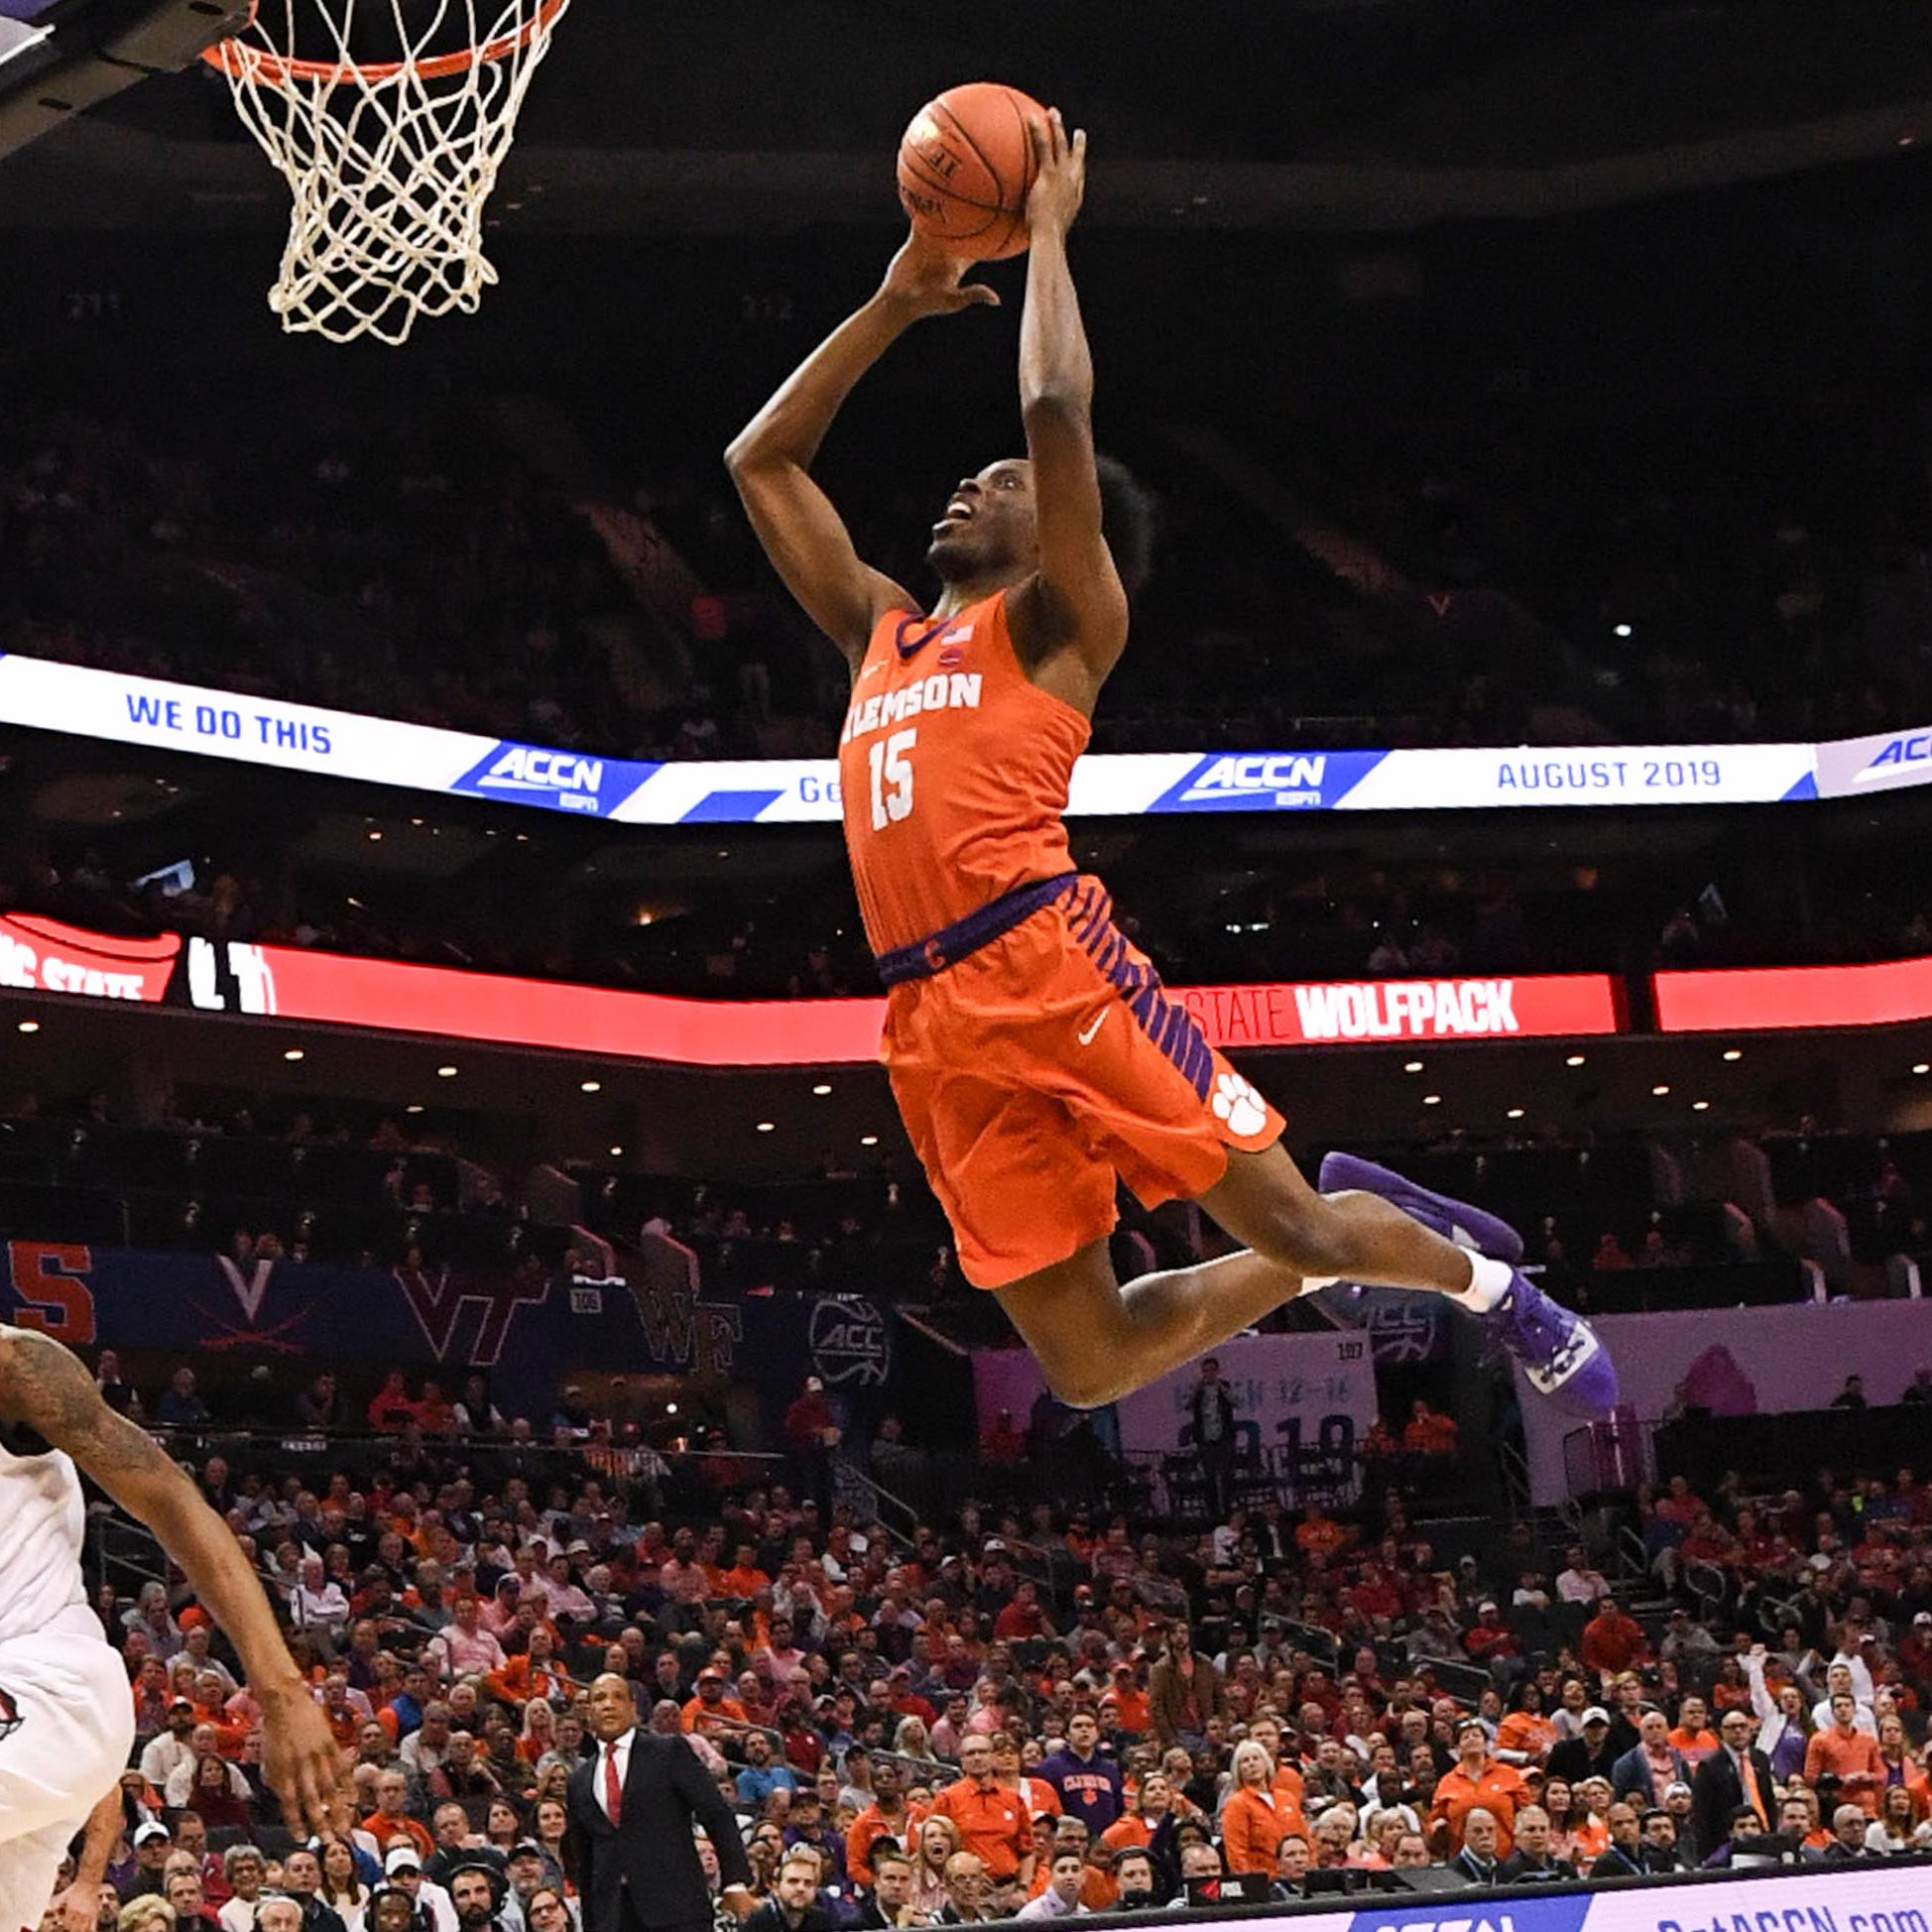 Clemson's NCAA Tournament chances may be dashed after loss to N.C. State